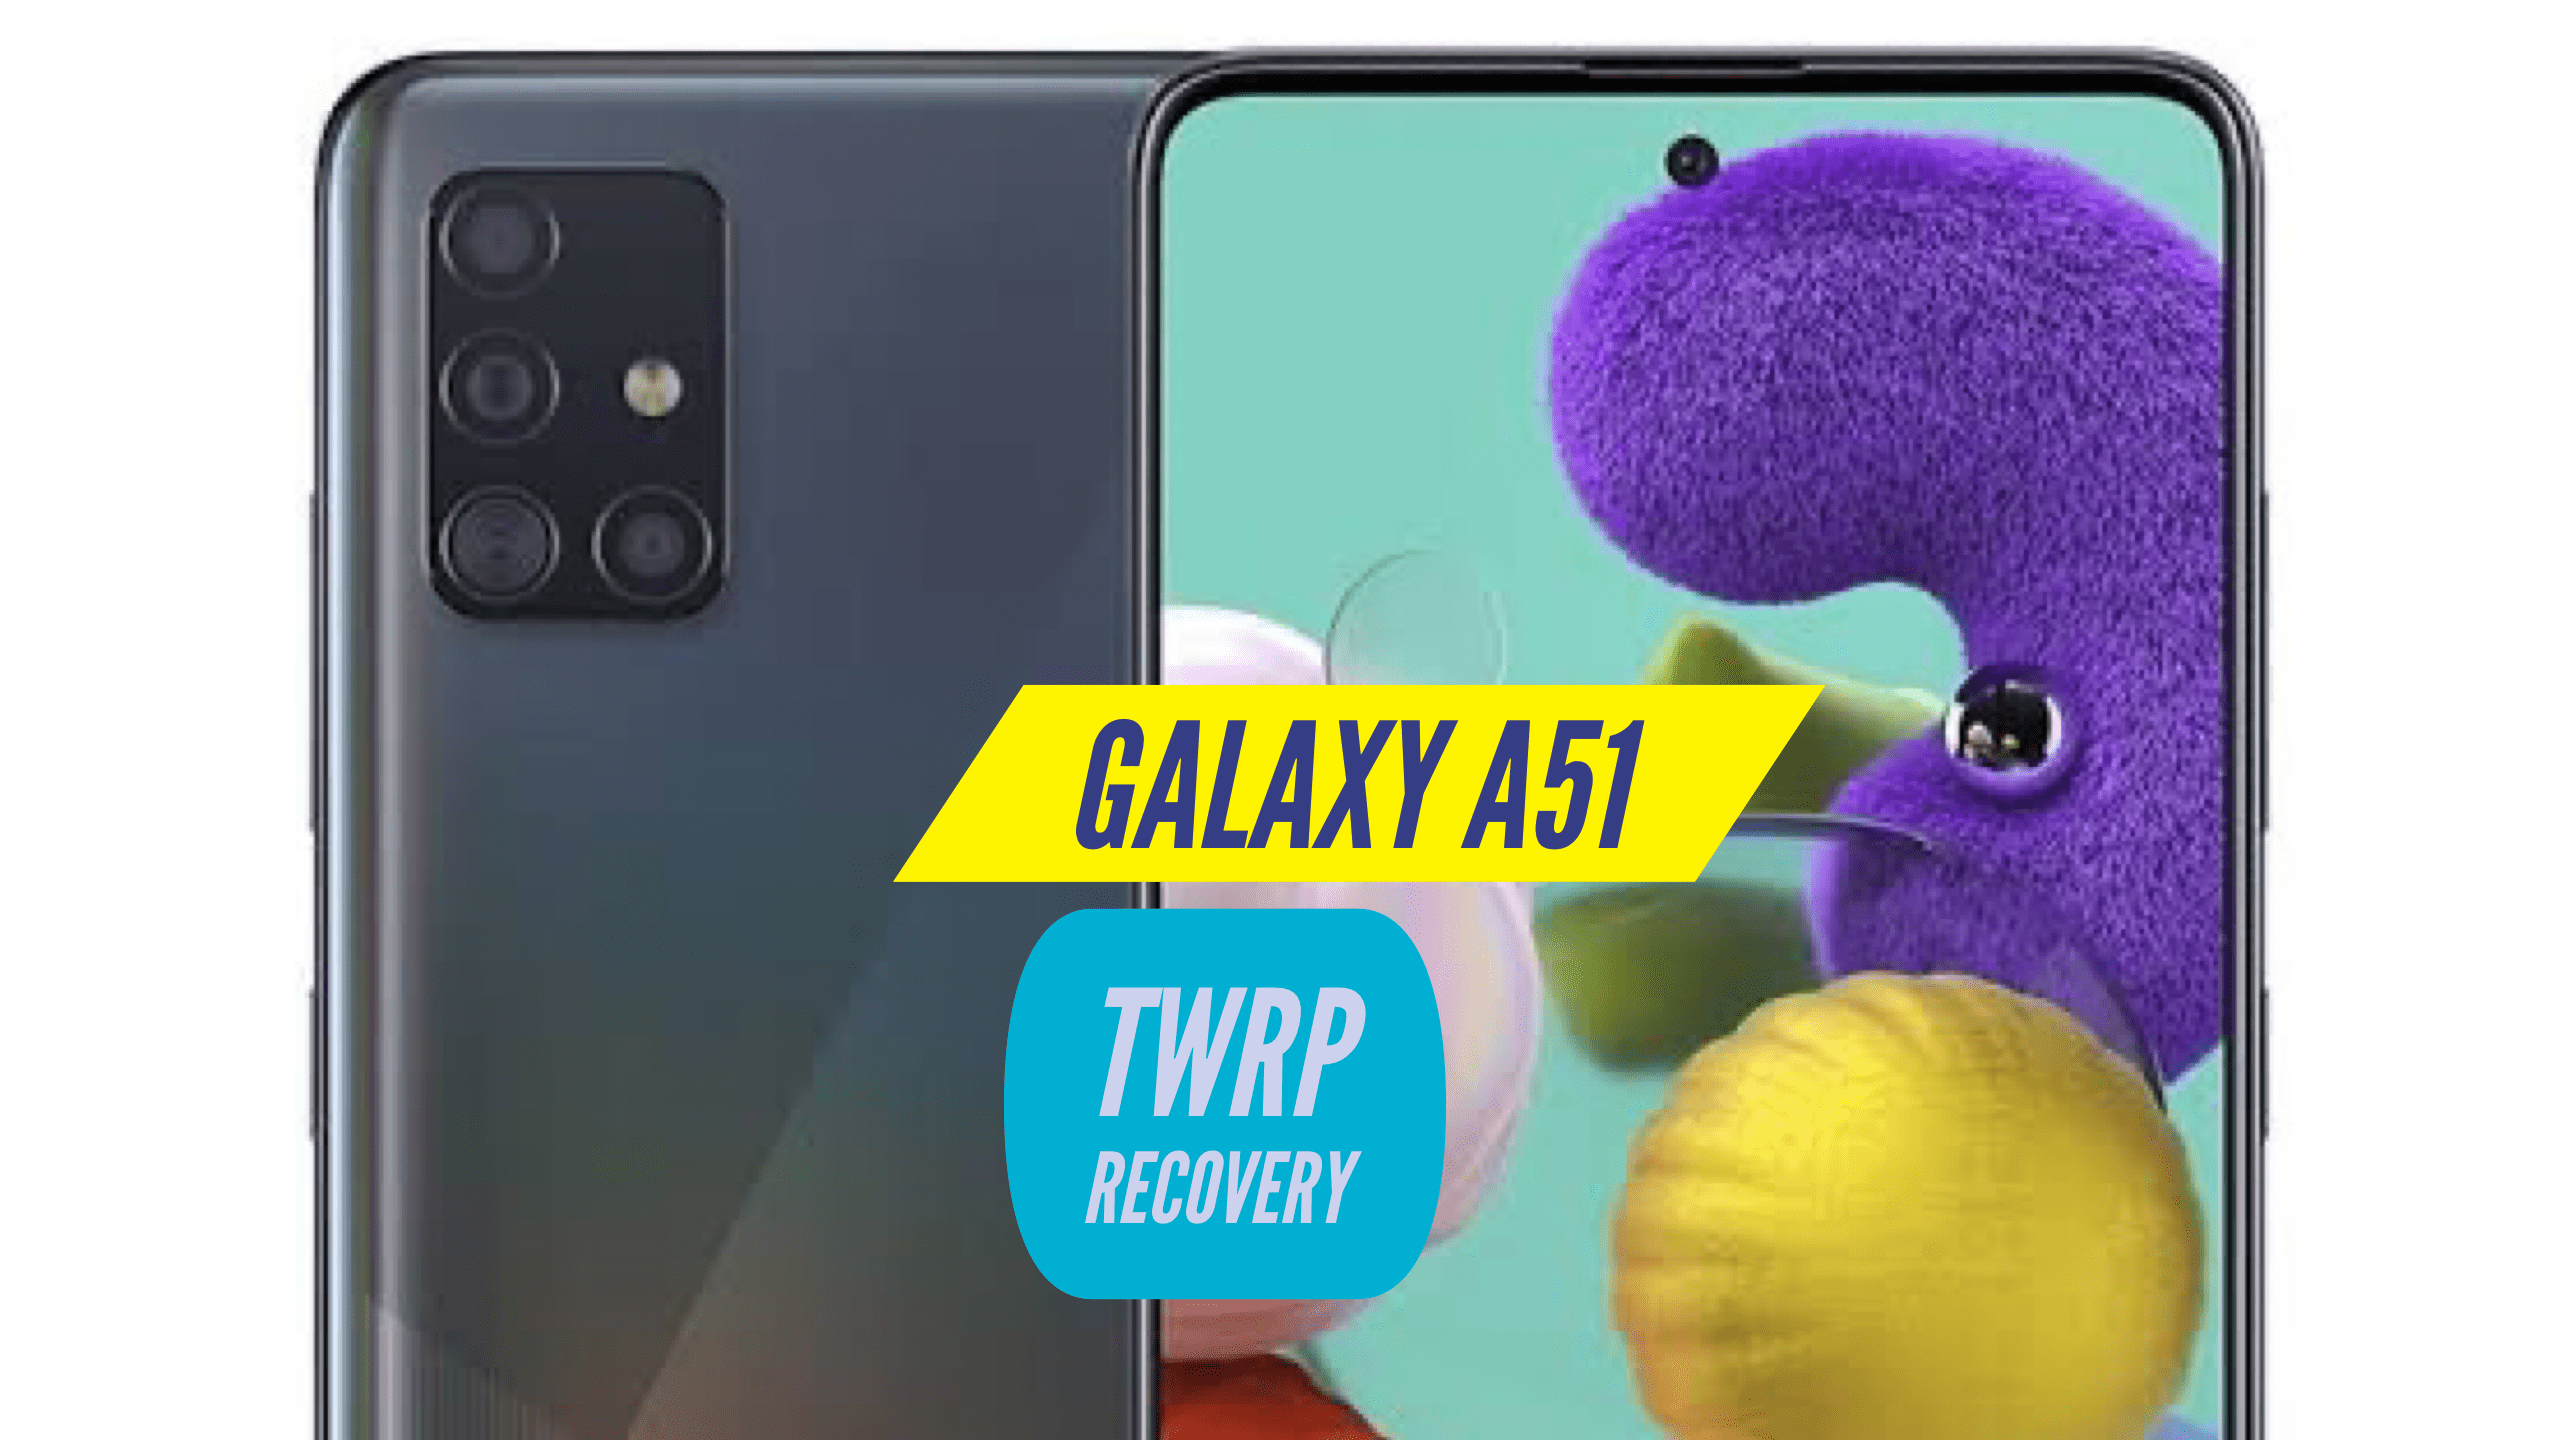 Samsung Galaxy A51 TWRP Recovery